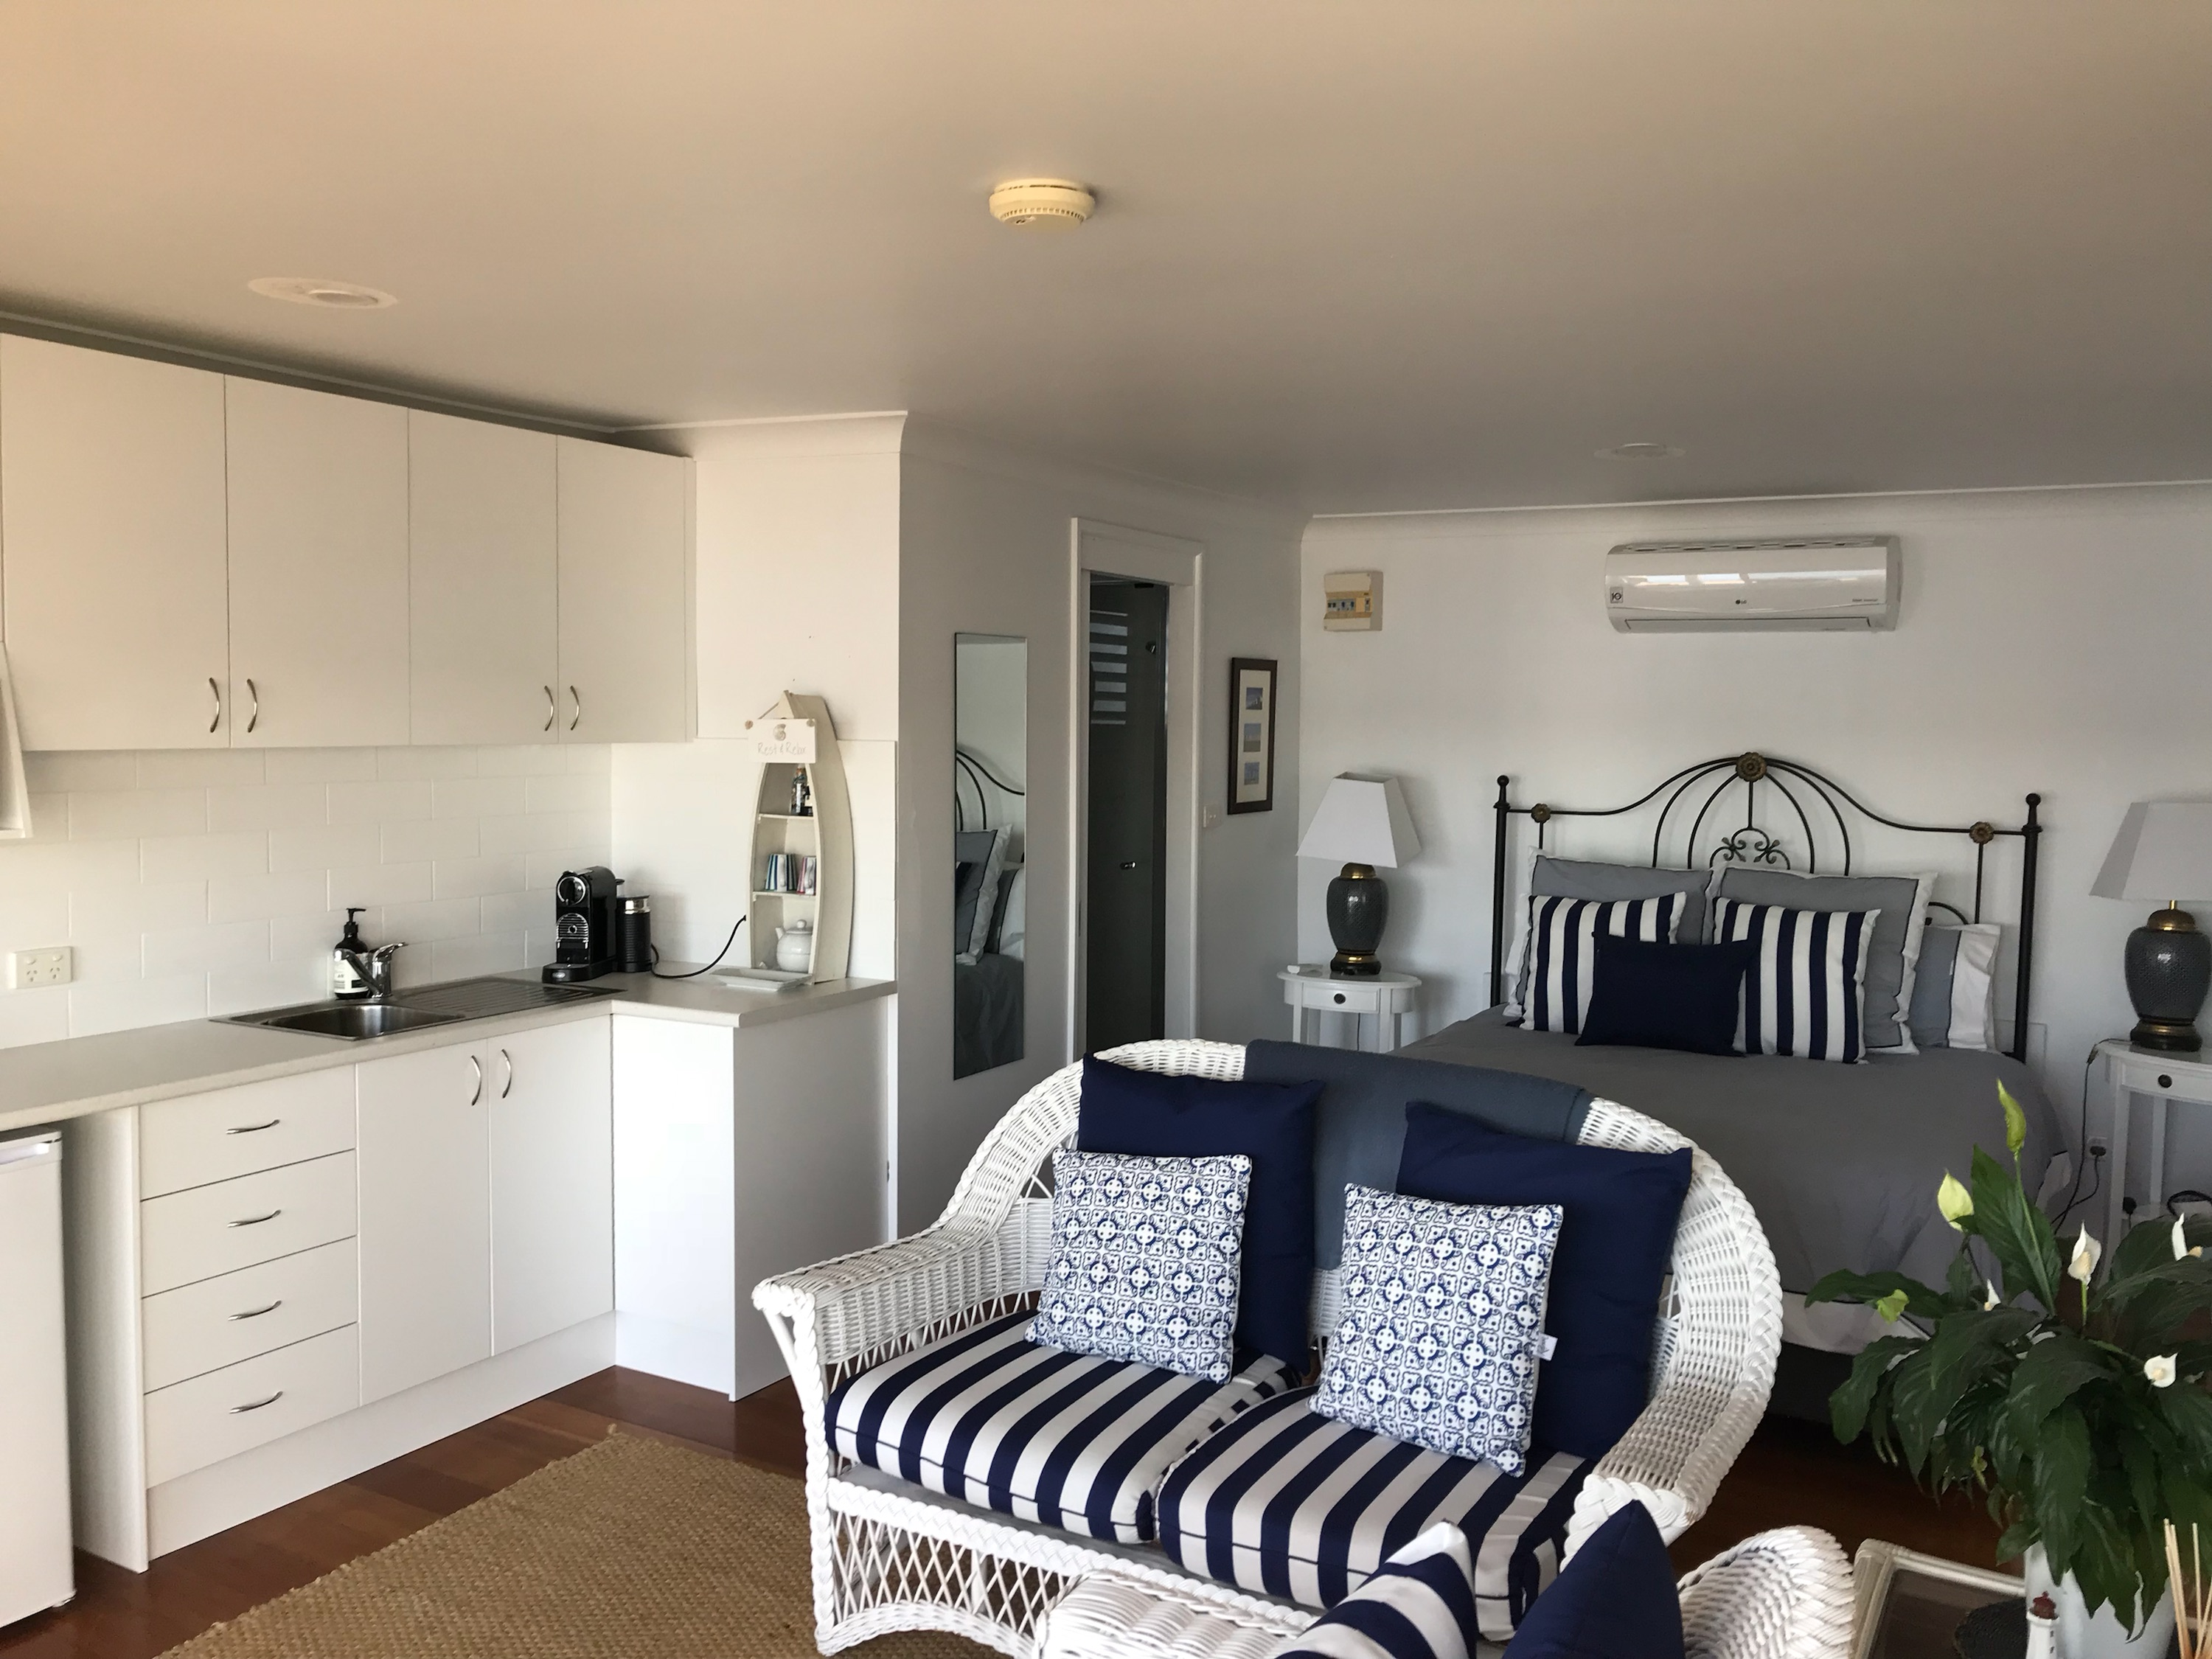 Bed Breakfast Lake Macquare - Waterfront, Kitchennette and Spa Accommodation